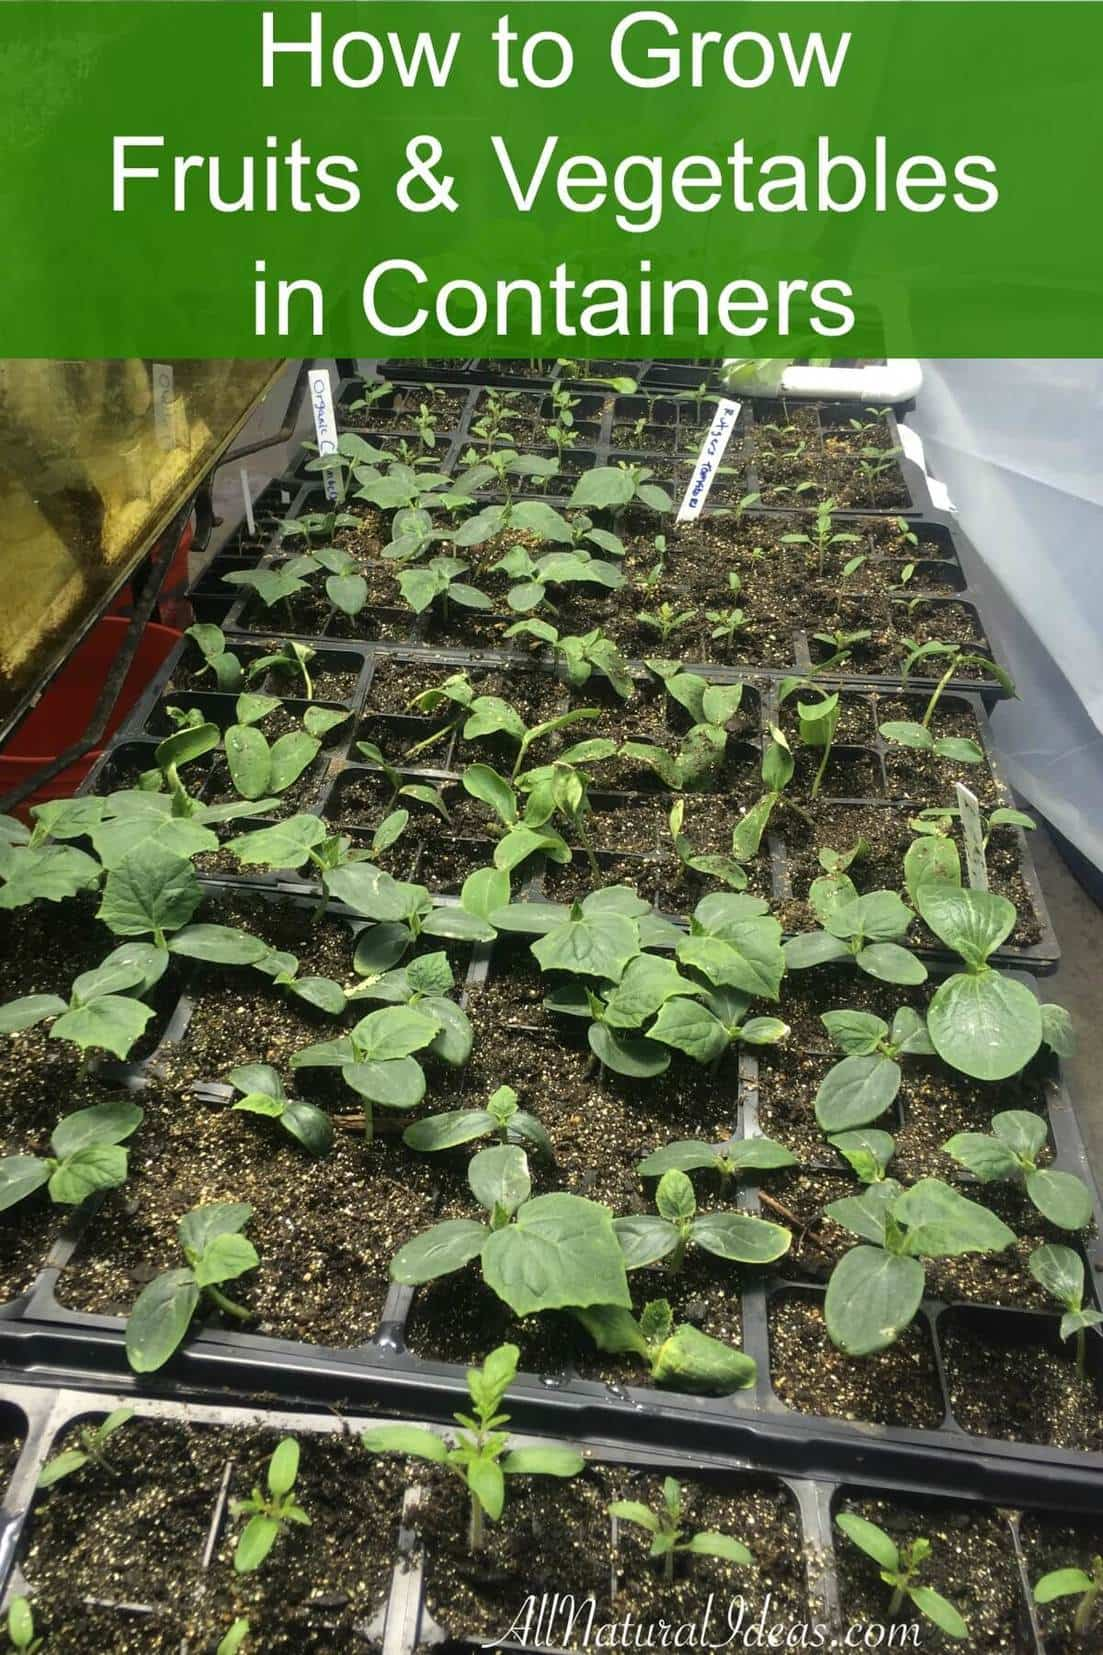 How to grow fruits and vegetables in containers